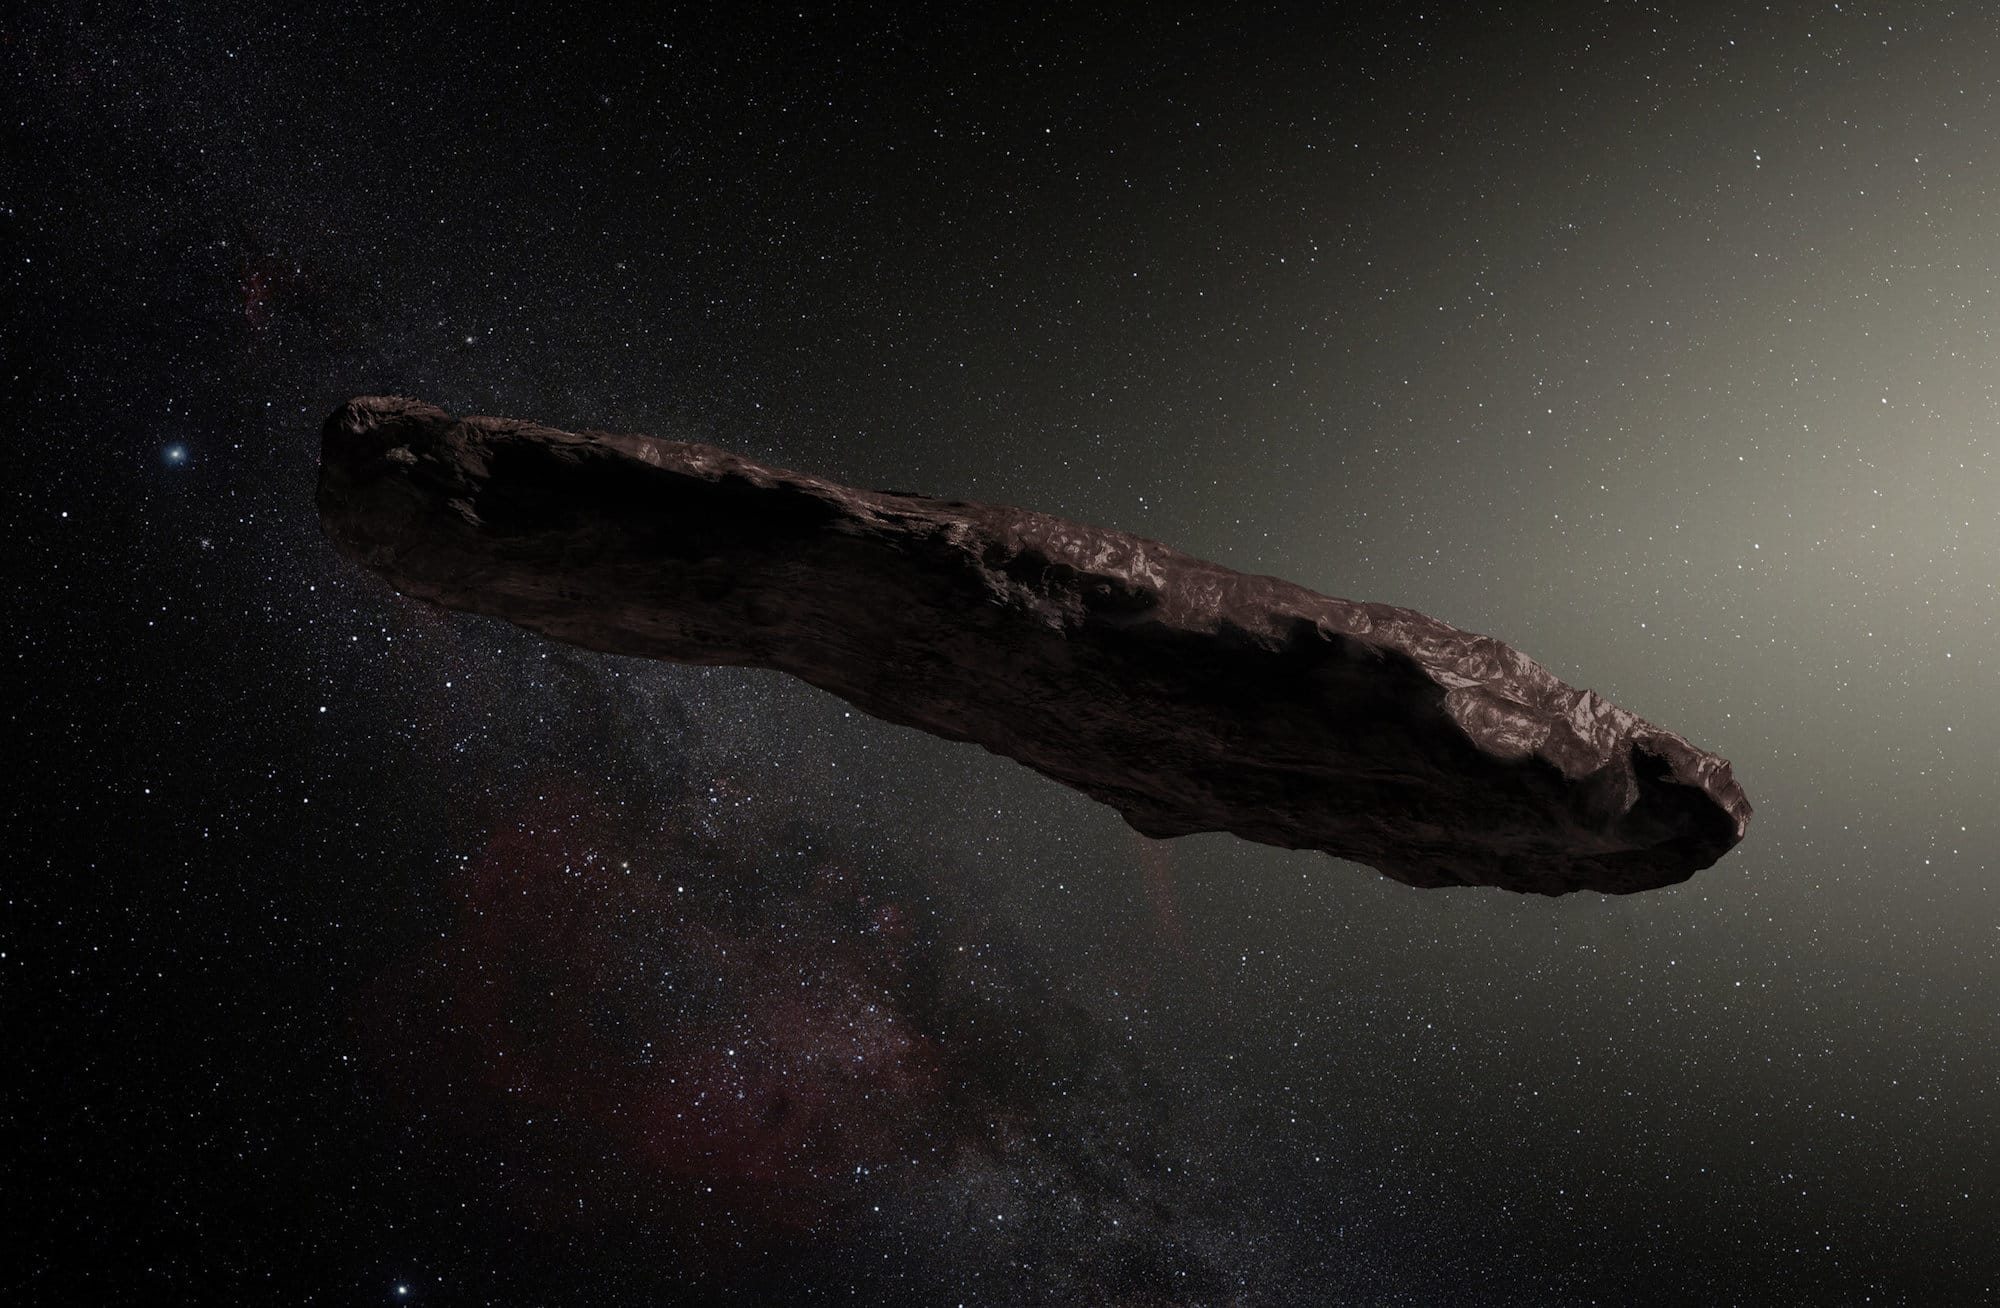 Artist's impression of 'Oumuamua. Credit: ESO / M. Kornmesser